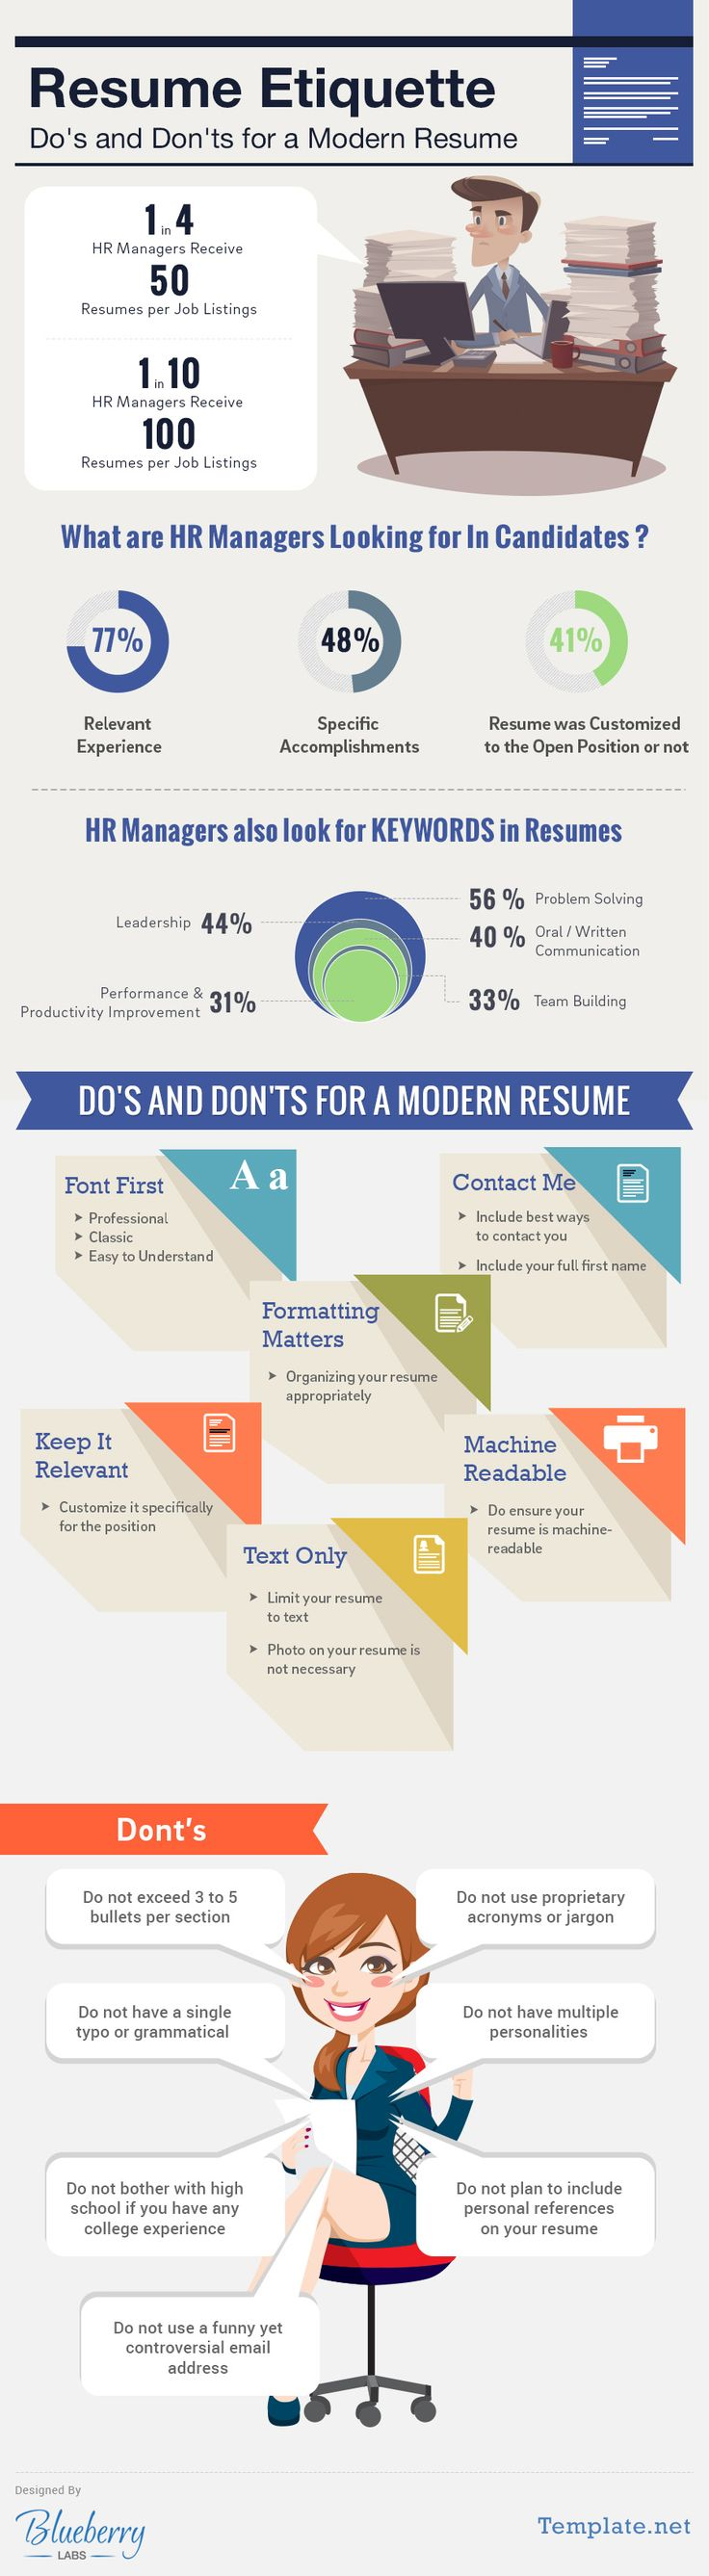 having a strong resume is essential when searching for jobs here are some great tips